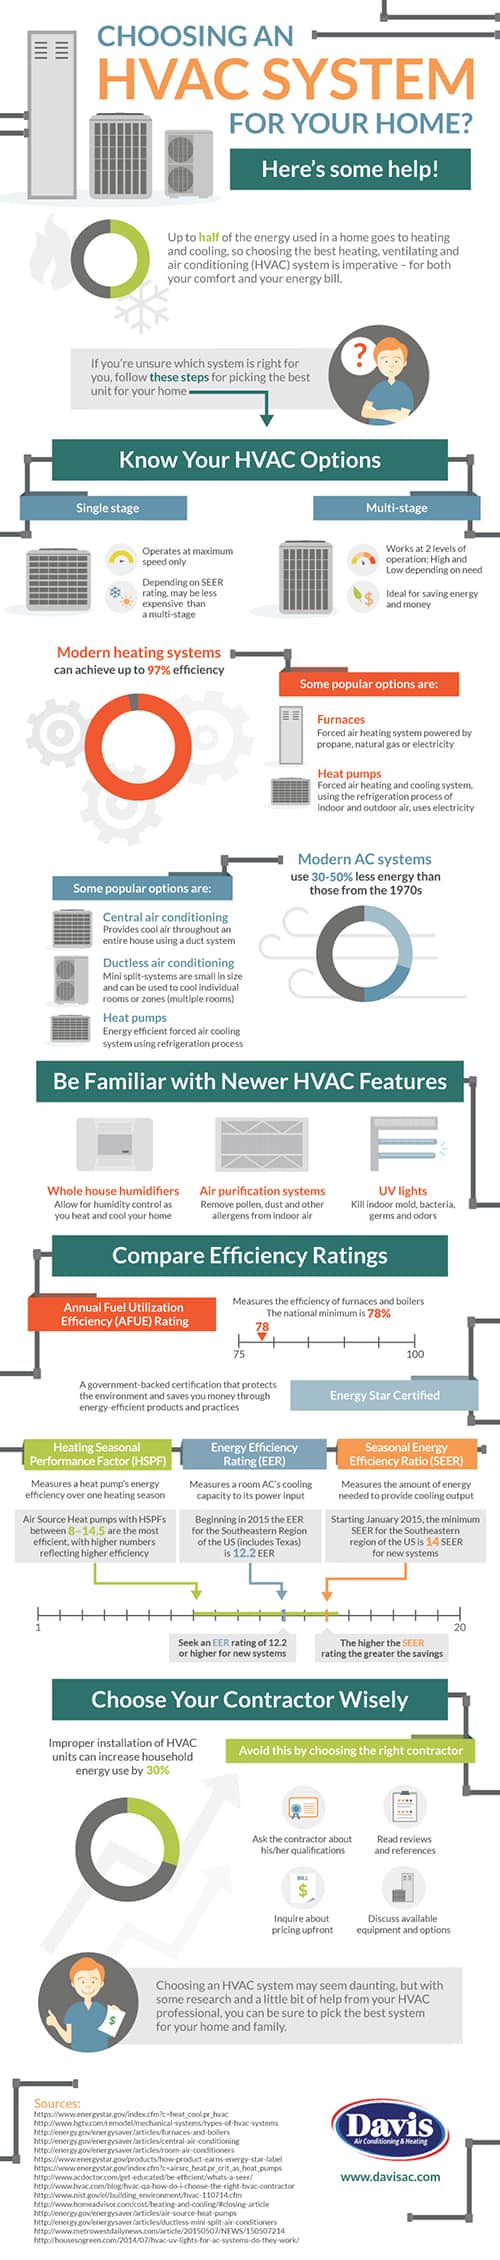 CP Davis Choose the Right HVAC System for Your Home D2a Jul22 Final - Choosing the Right HVAC System: An Infographic